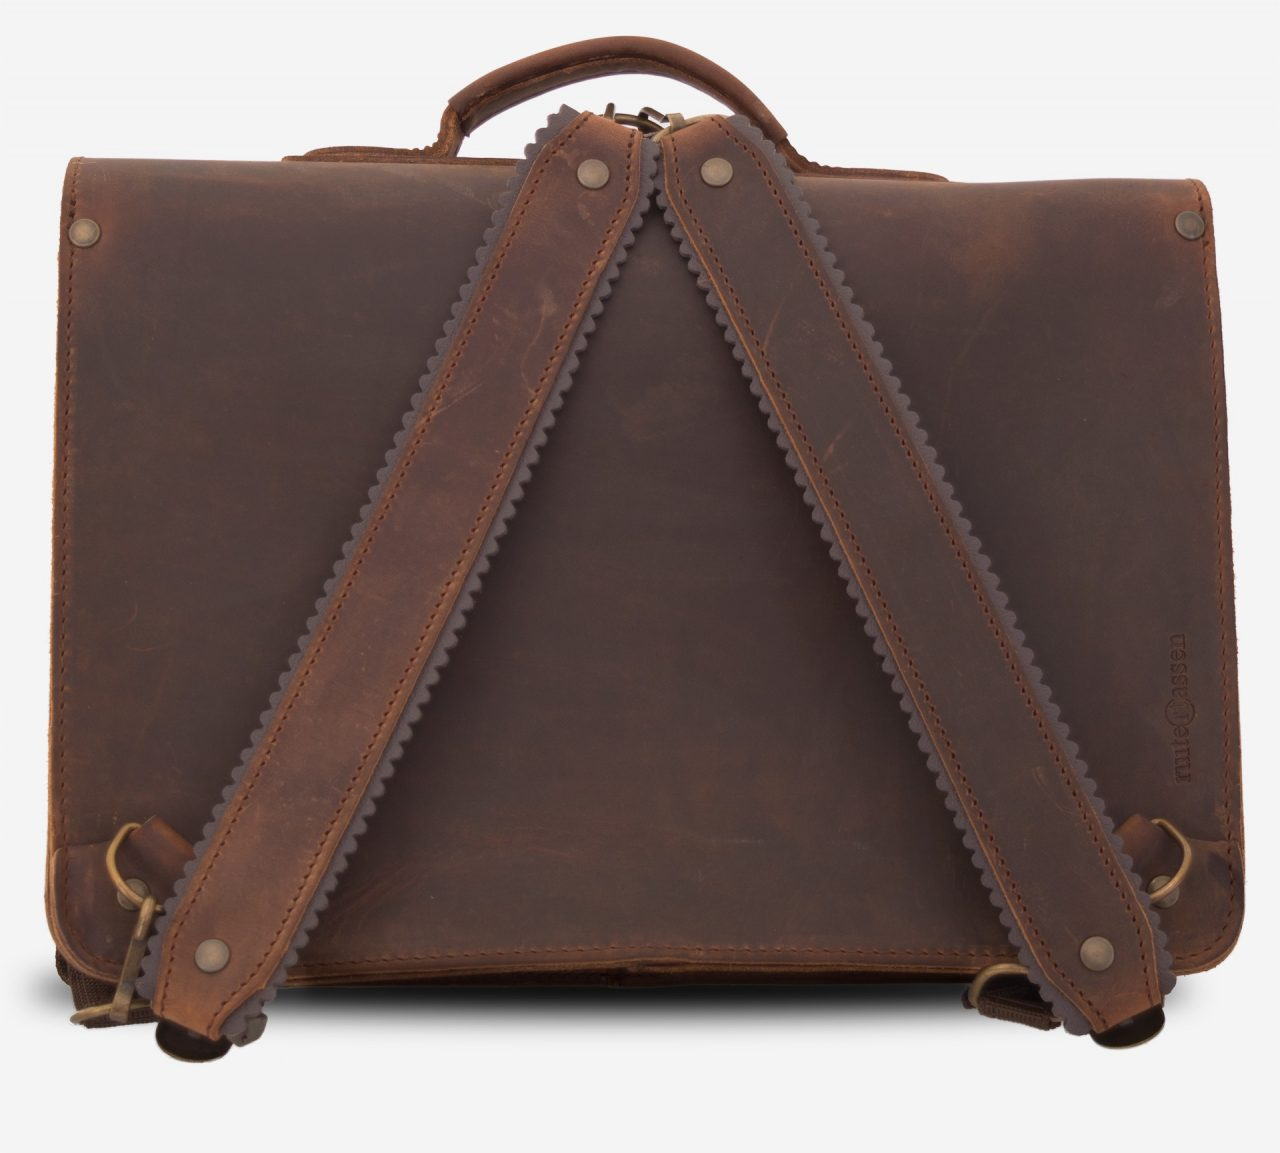 Back view of brown leather satchel backpack for adults fitted with shoulder straps.